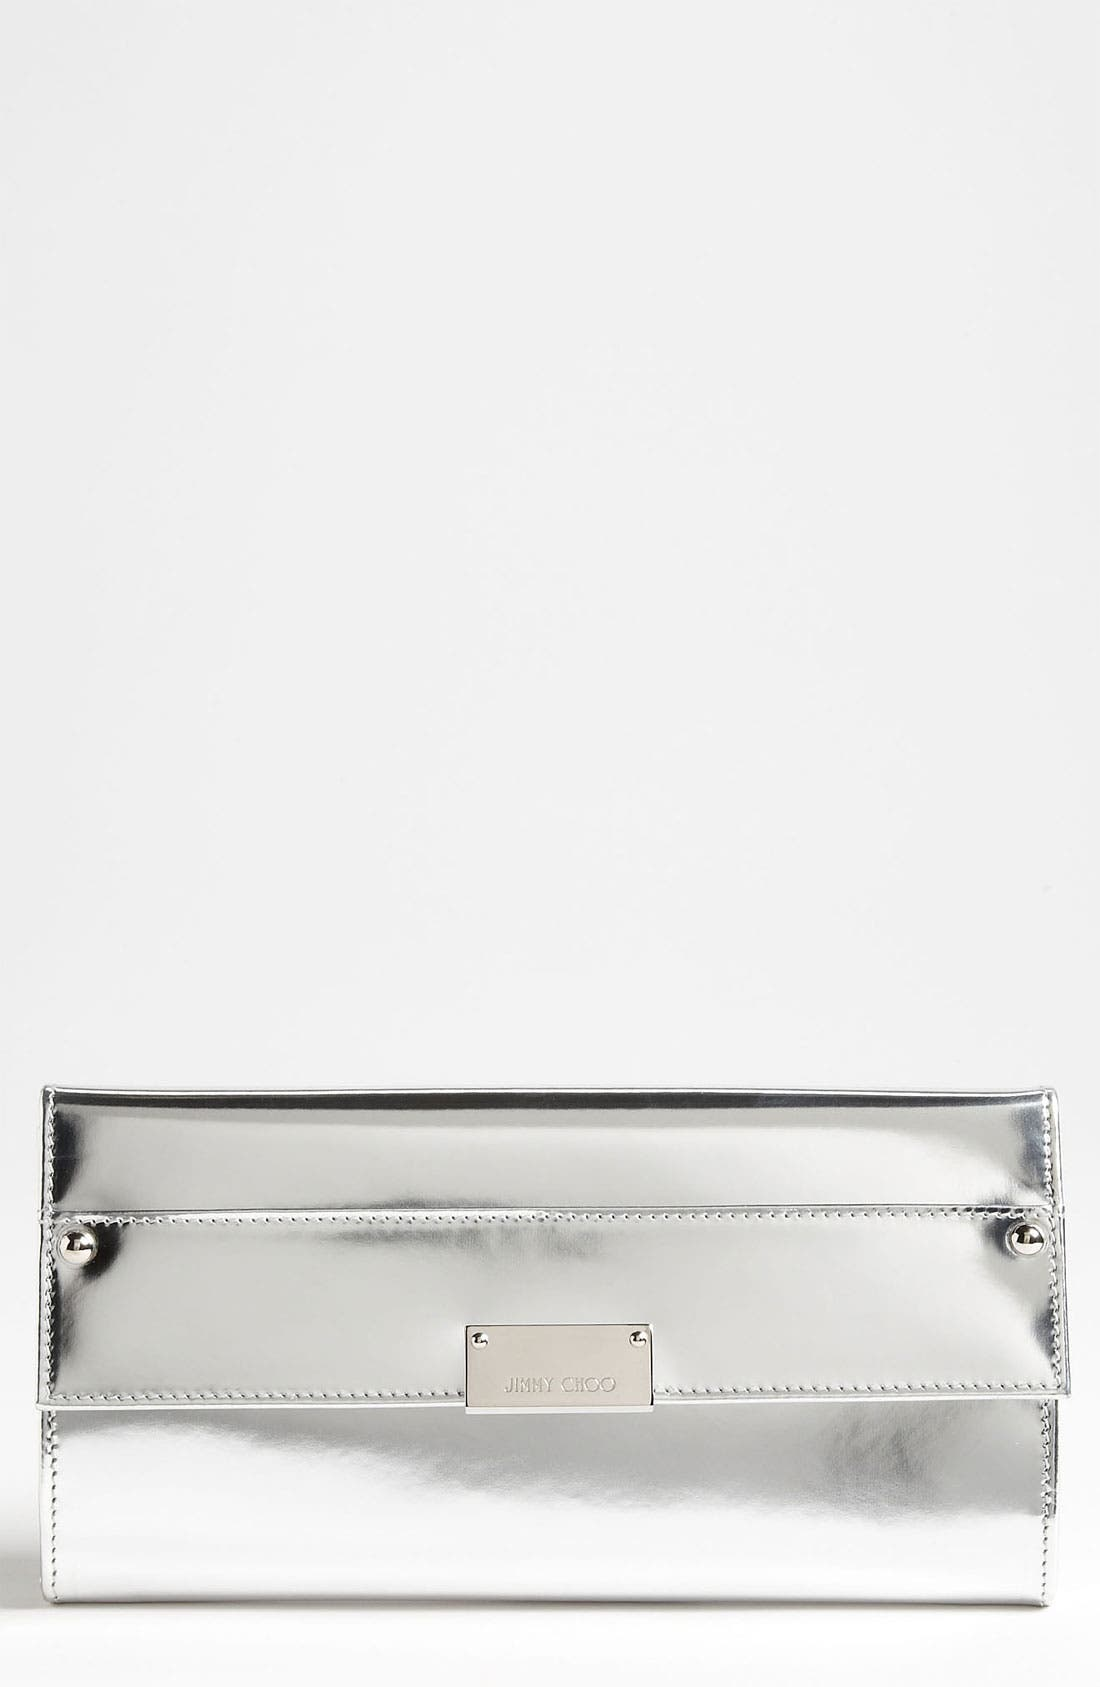 Main Image - Jimmy Choo 'Reese' Metallic Leather Clutch